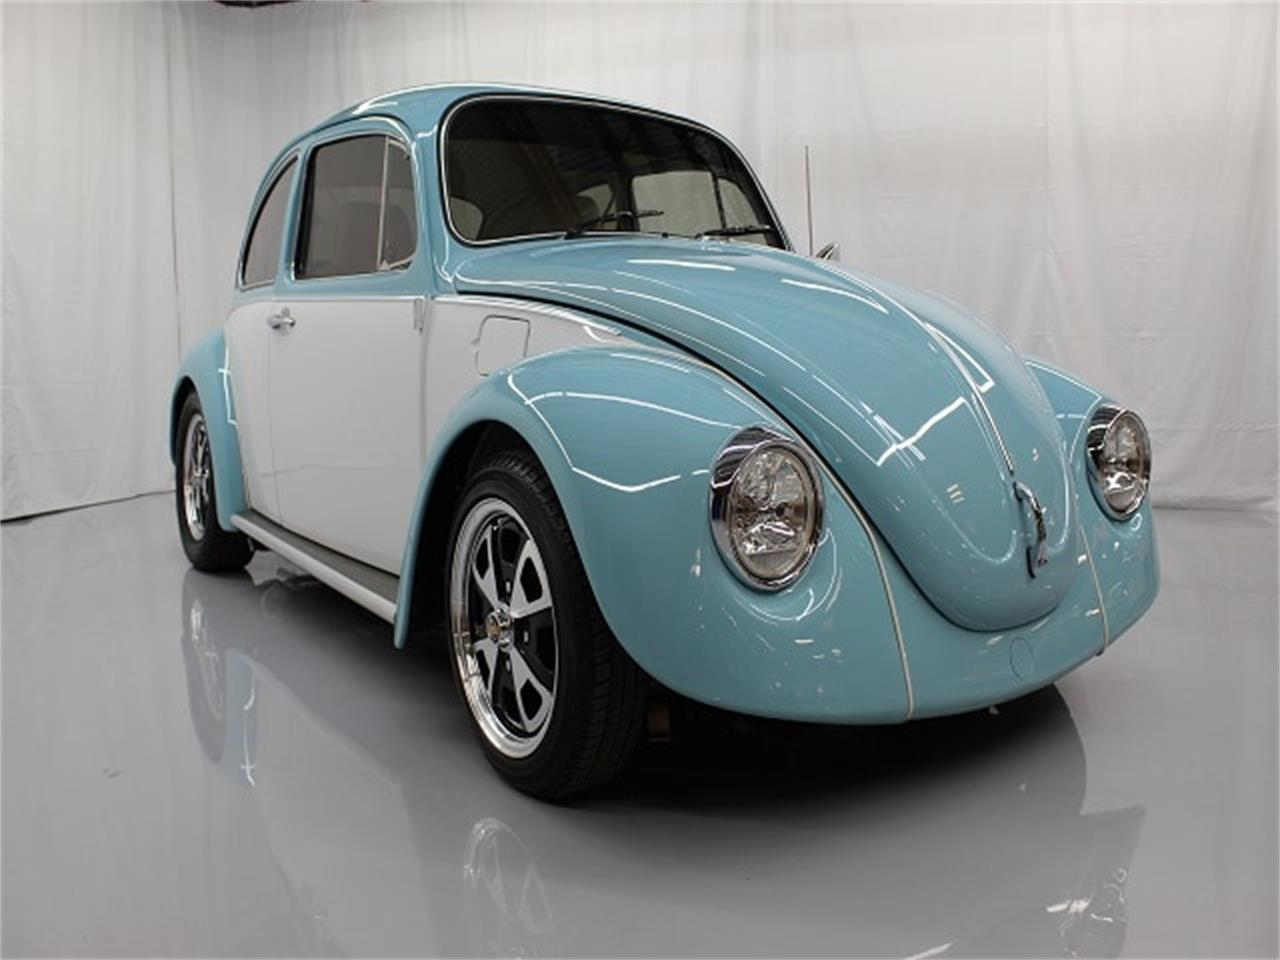 1974 Volkswagen Beetle for sale in Christiansburg, VA